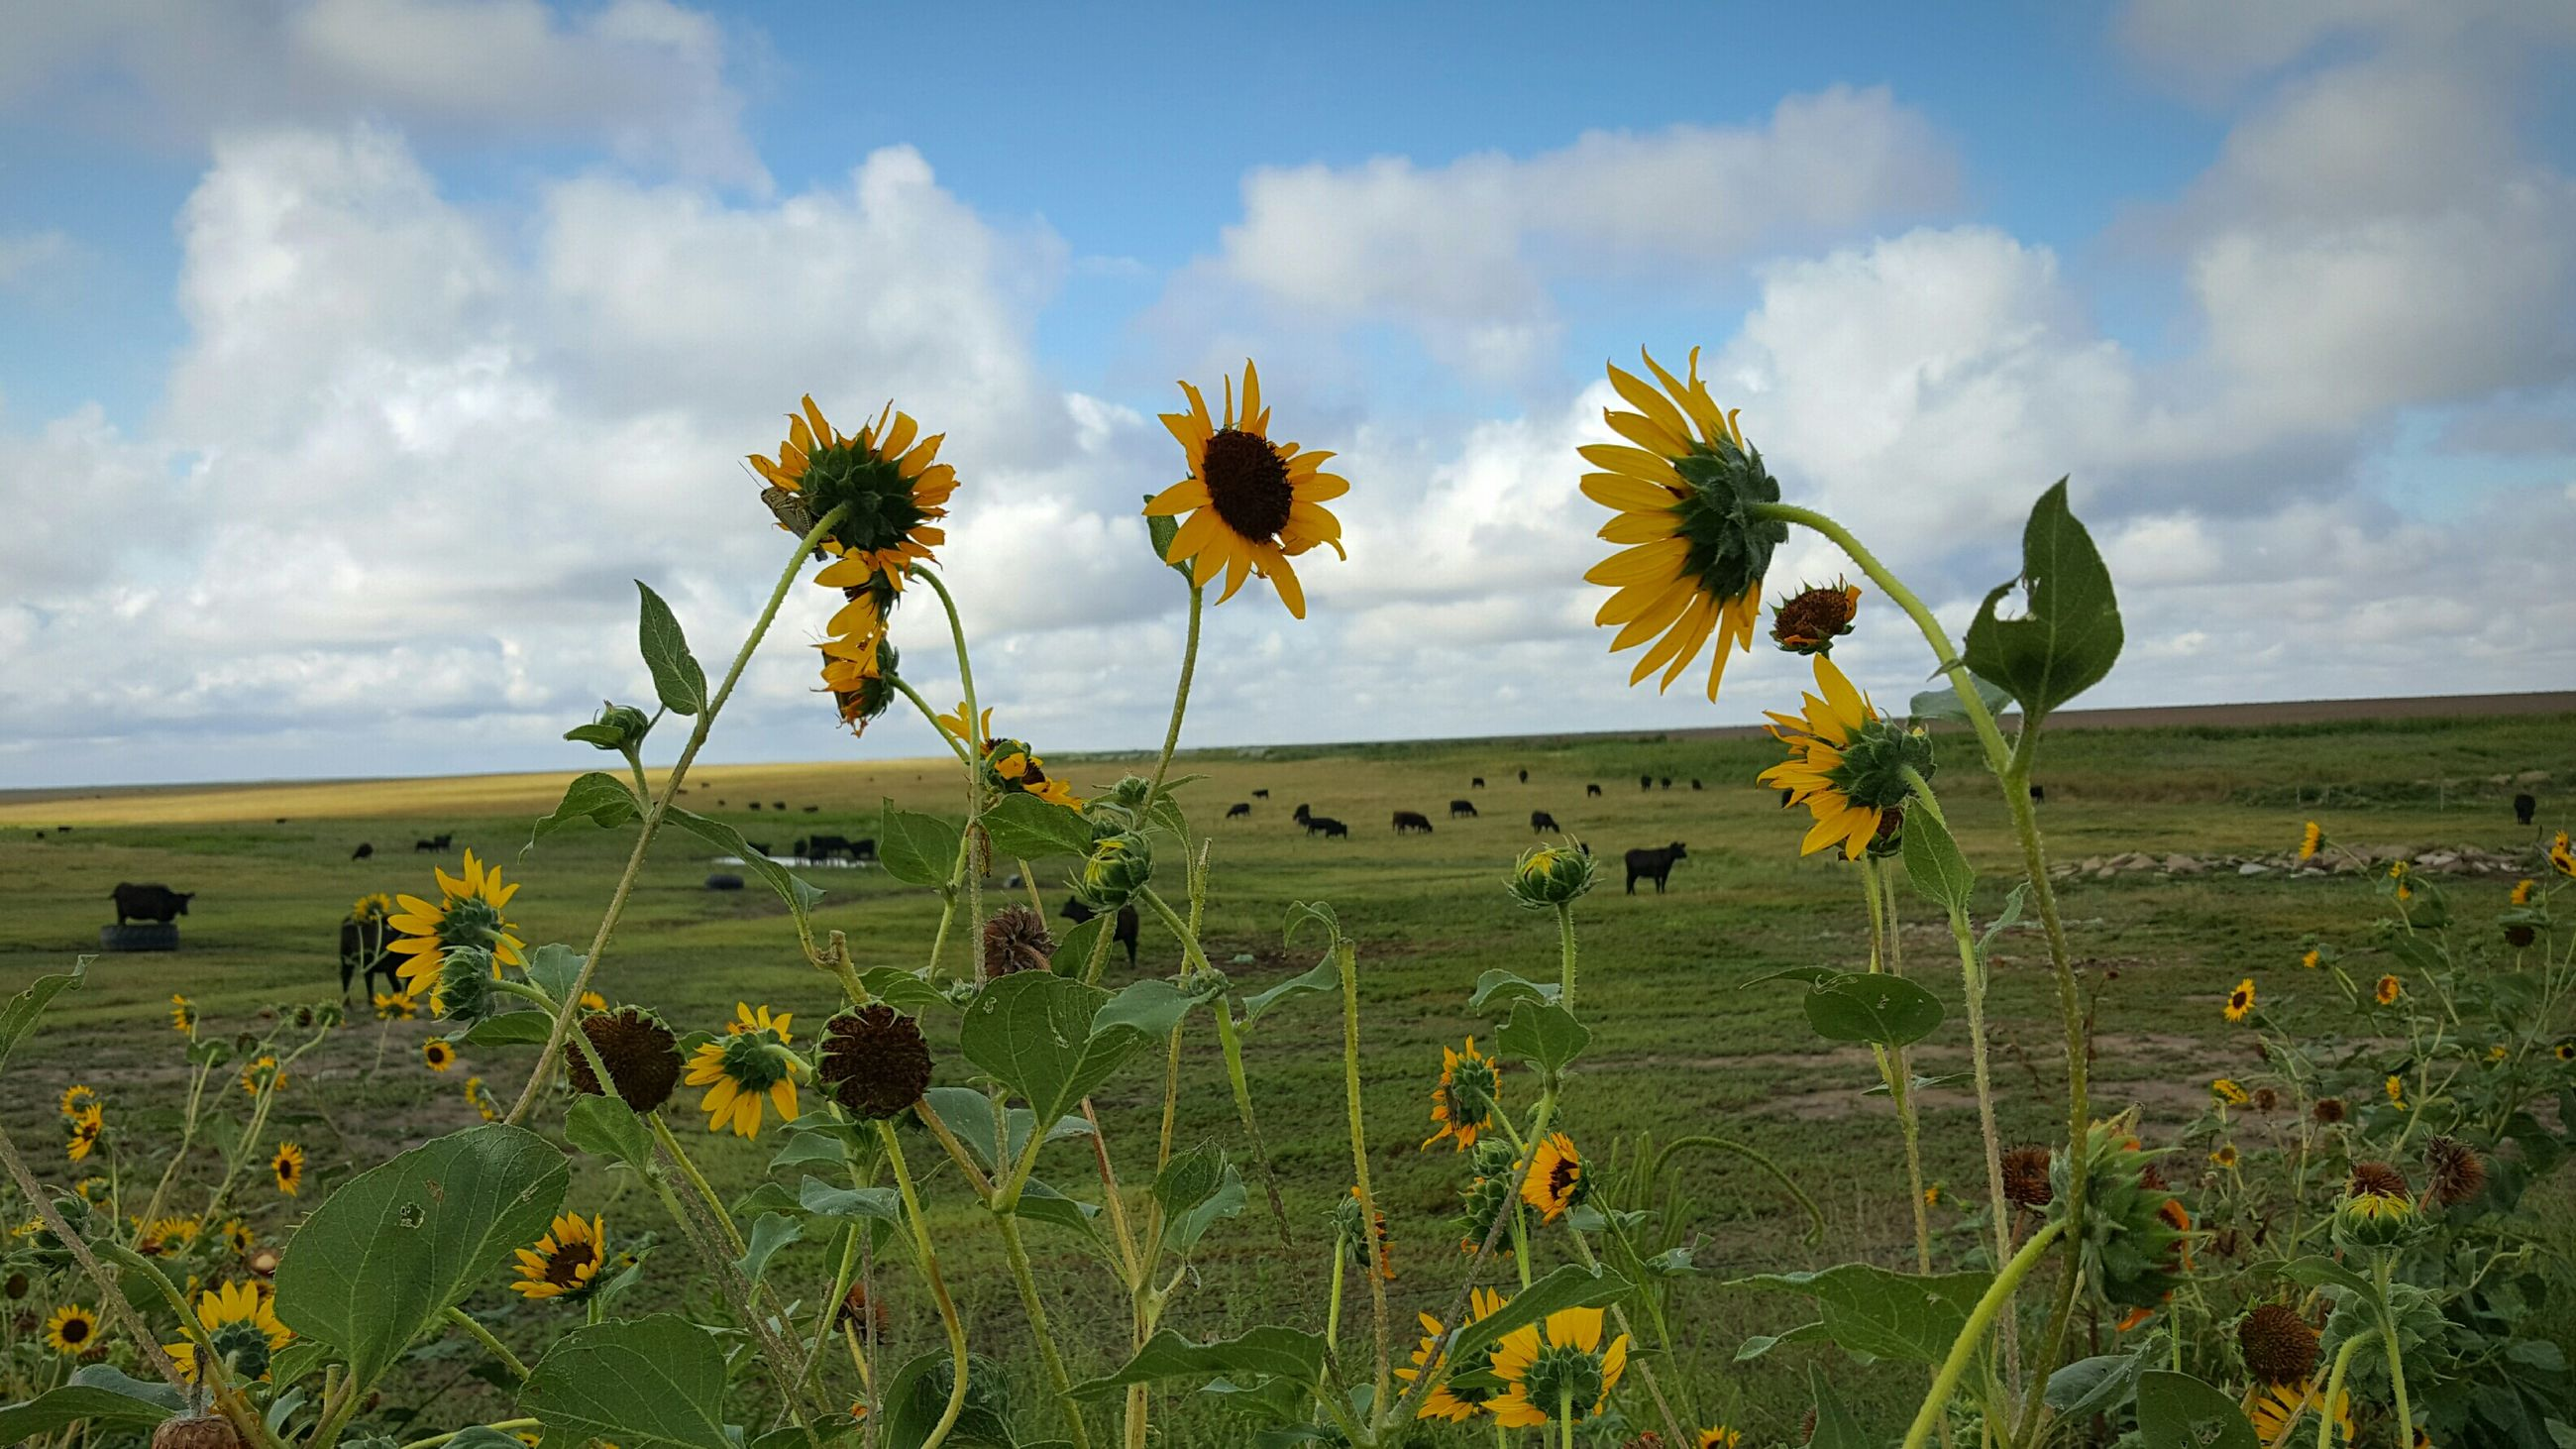 Fresh sunflowers blooming in field with cattle grazing against sky